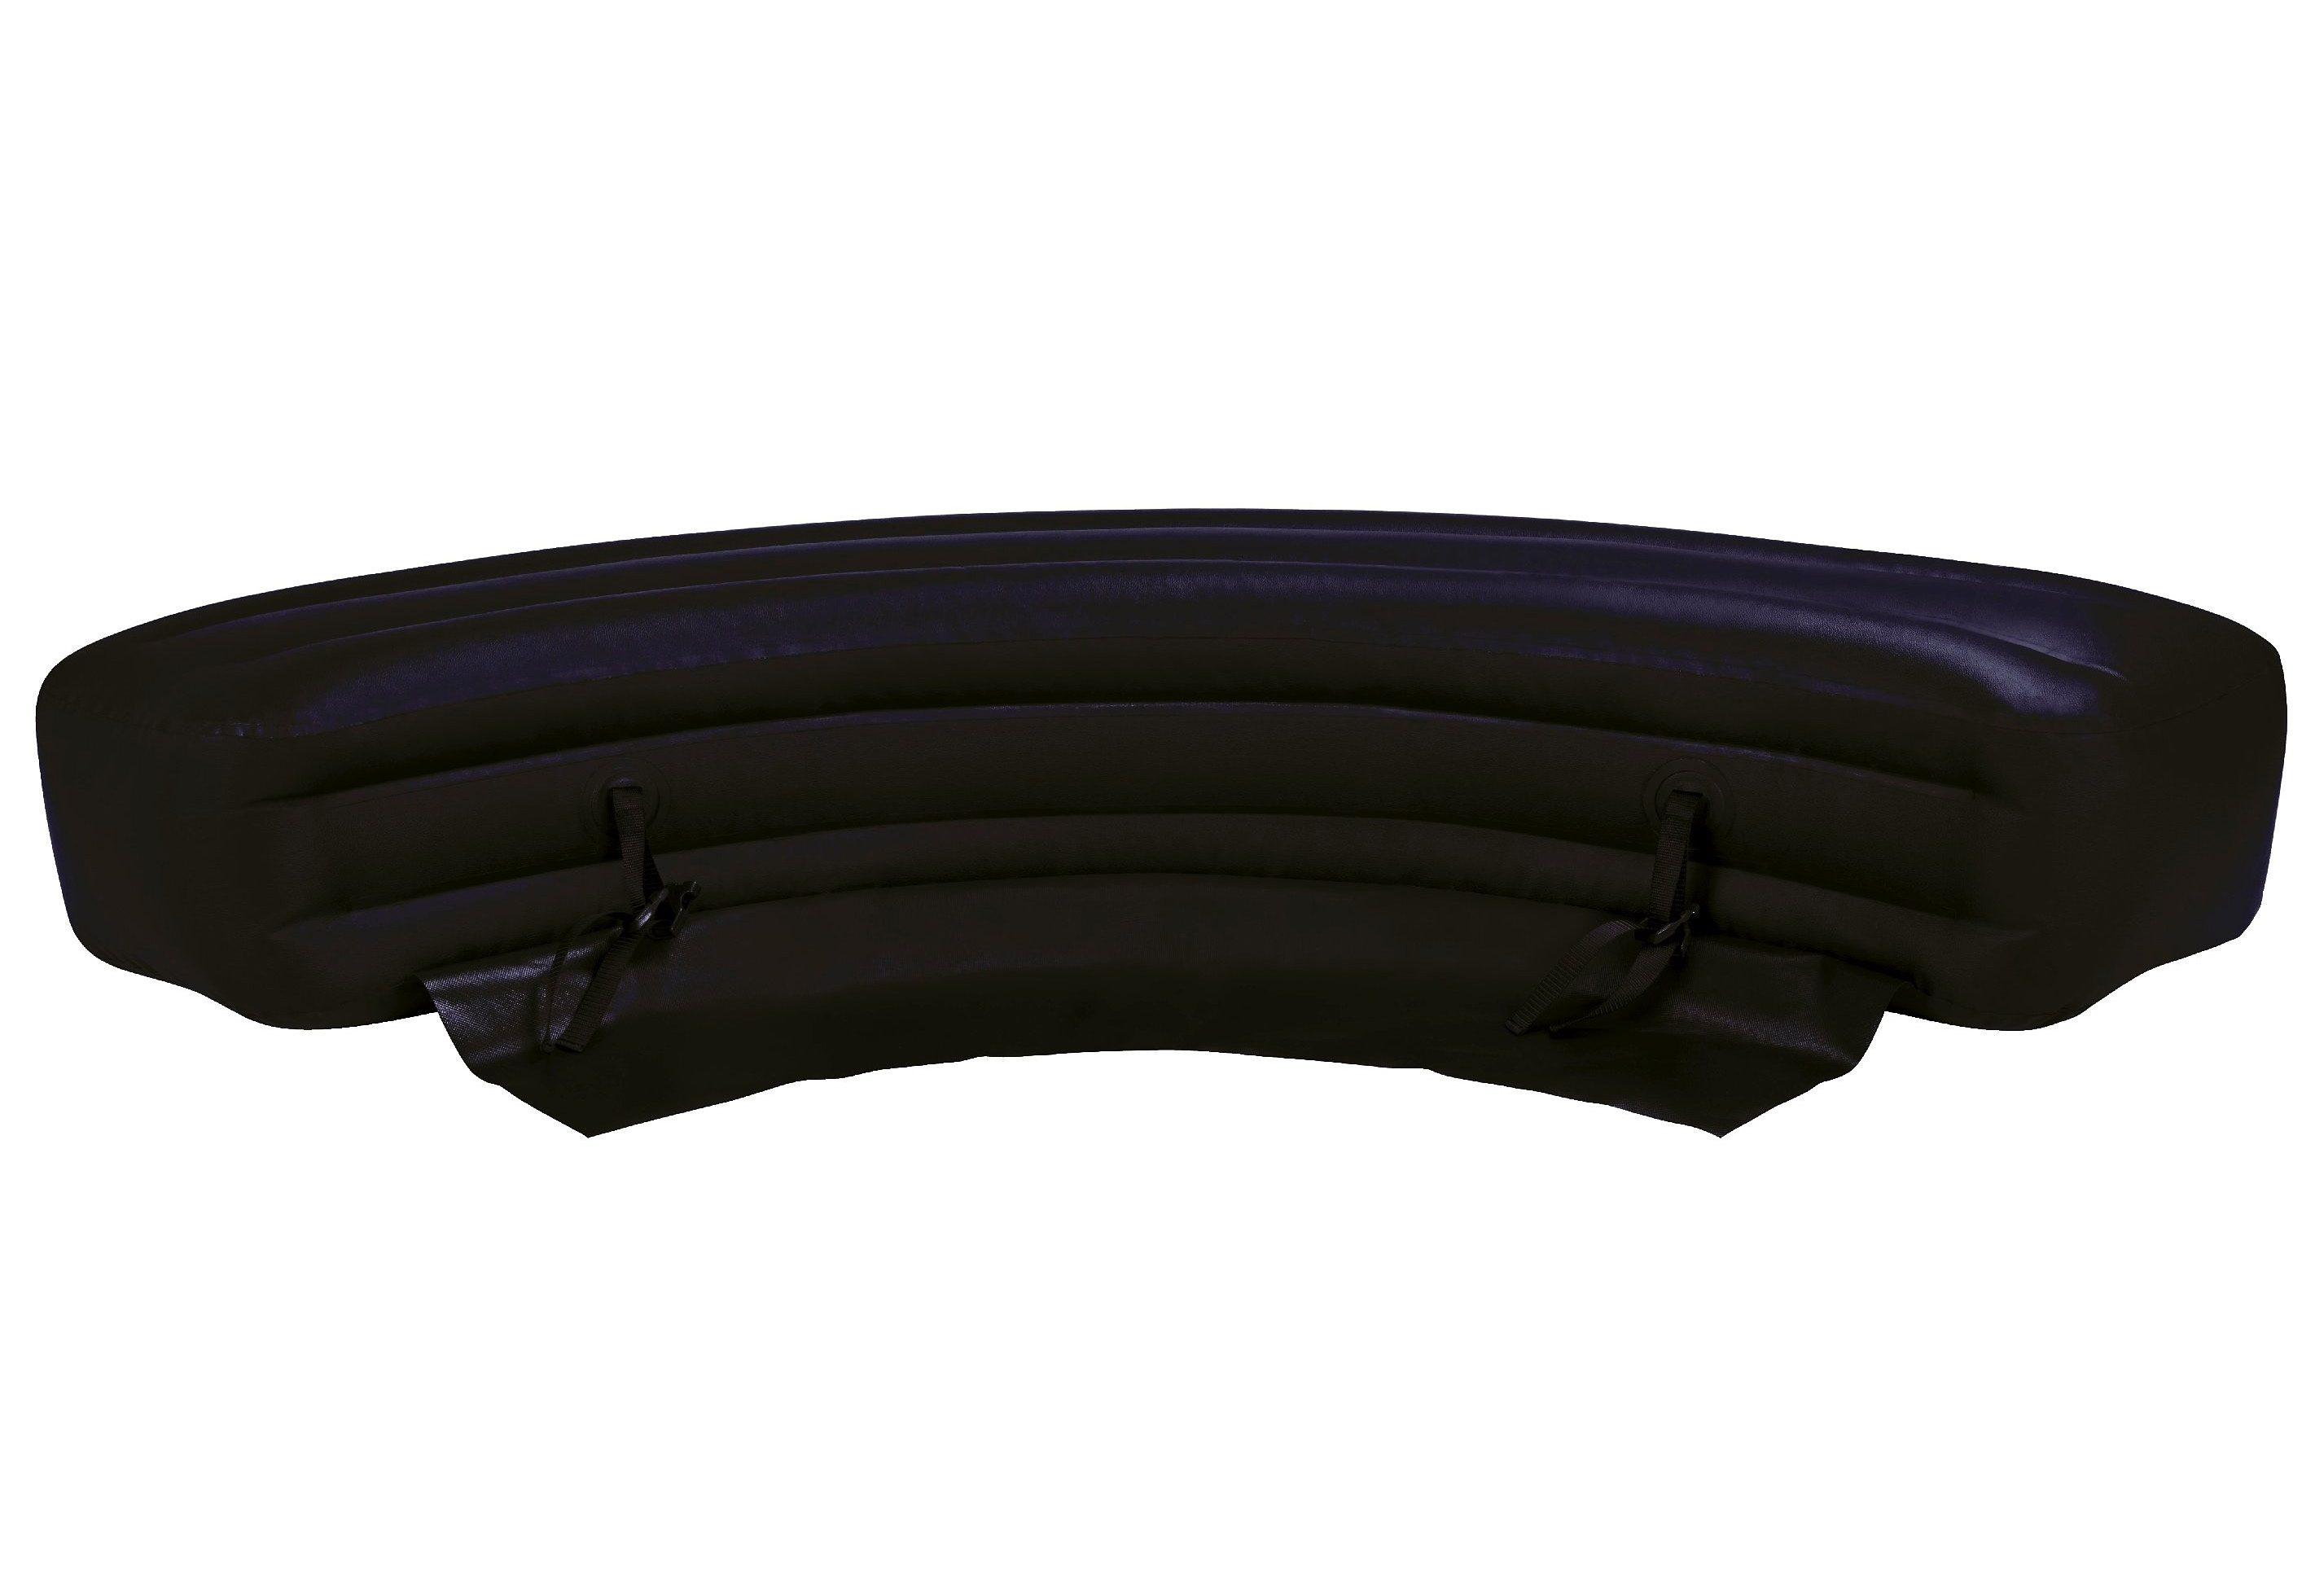 Whirlpool-Sitzbank, »PureSpa Inflatable Bench«, Intex